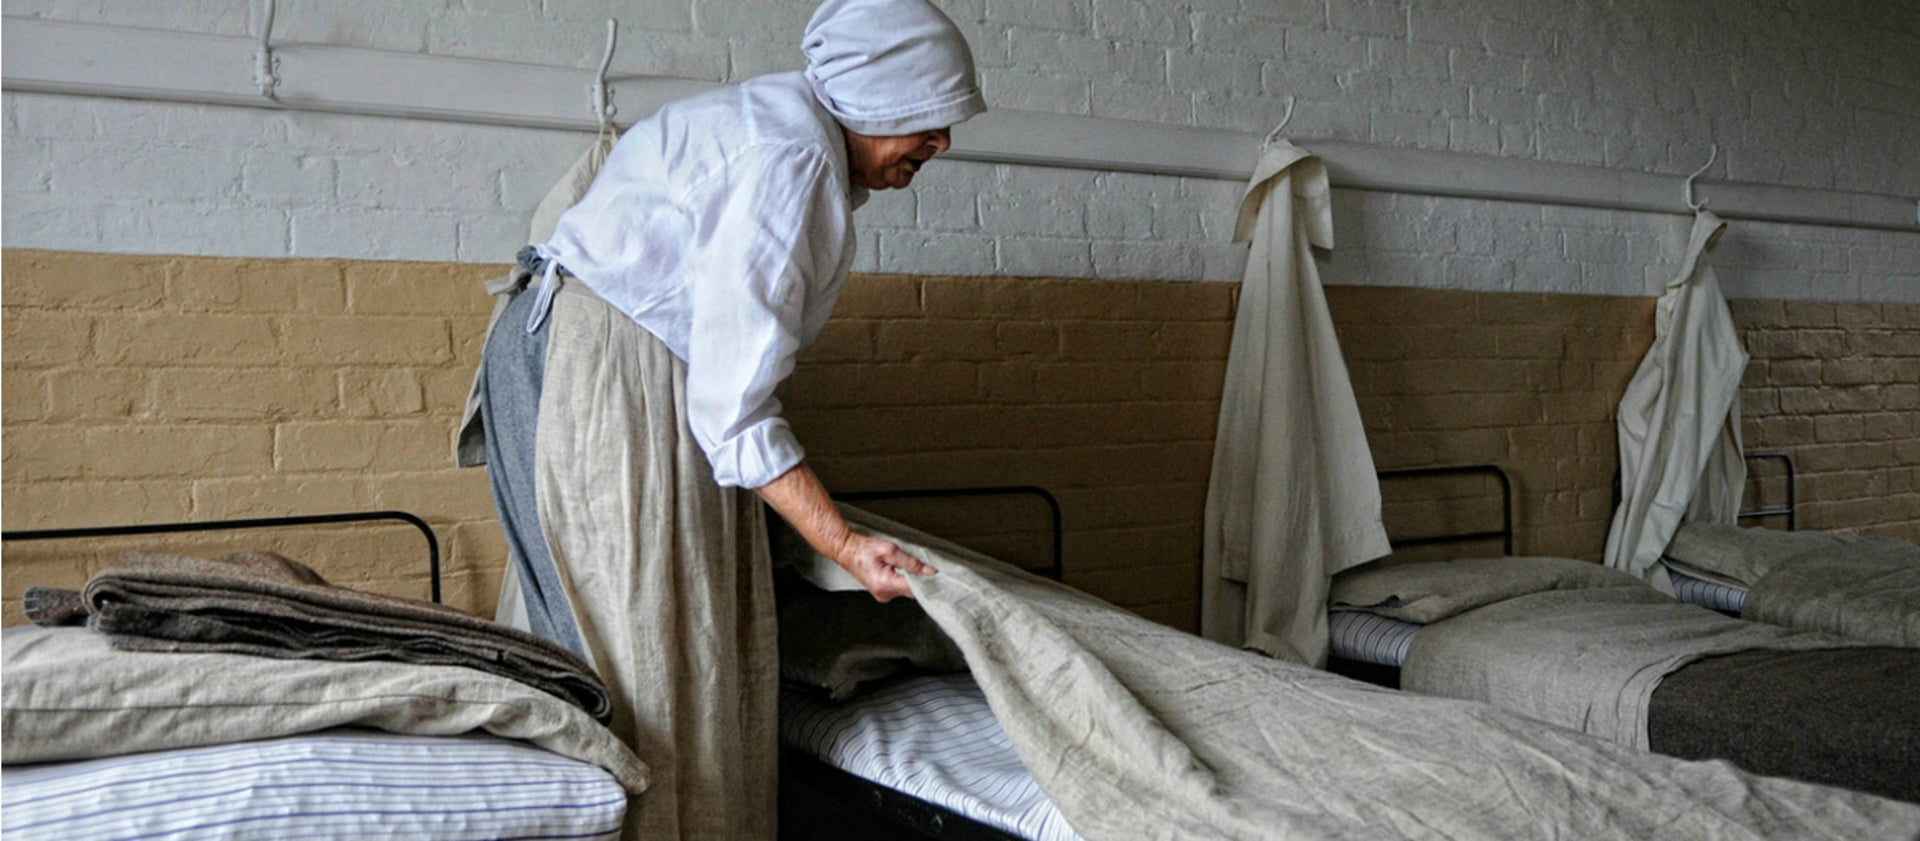 Life inside The Workhouse | National Trust